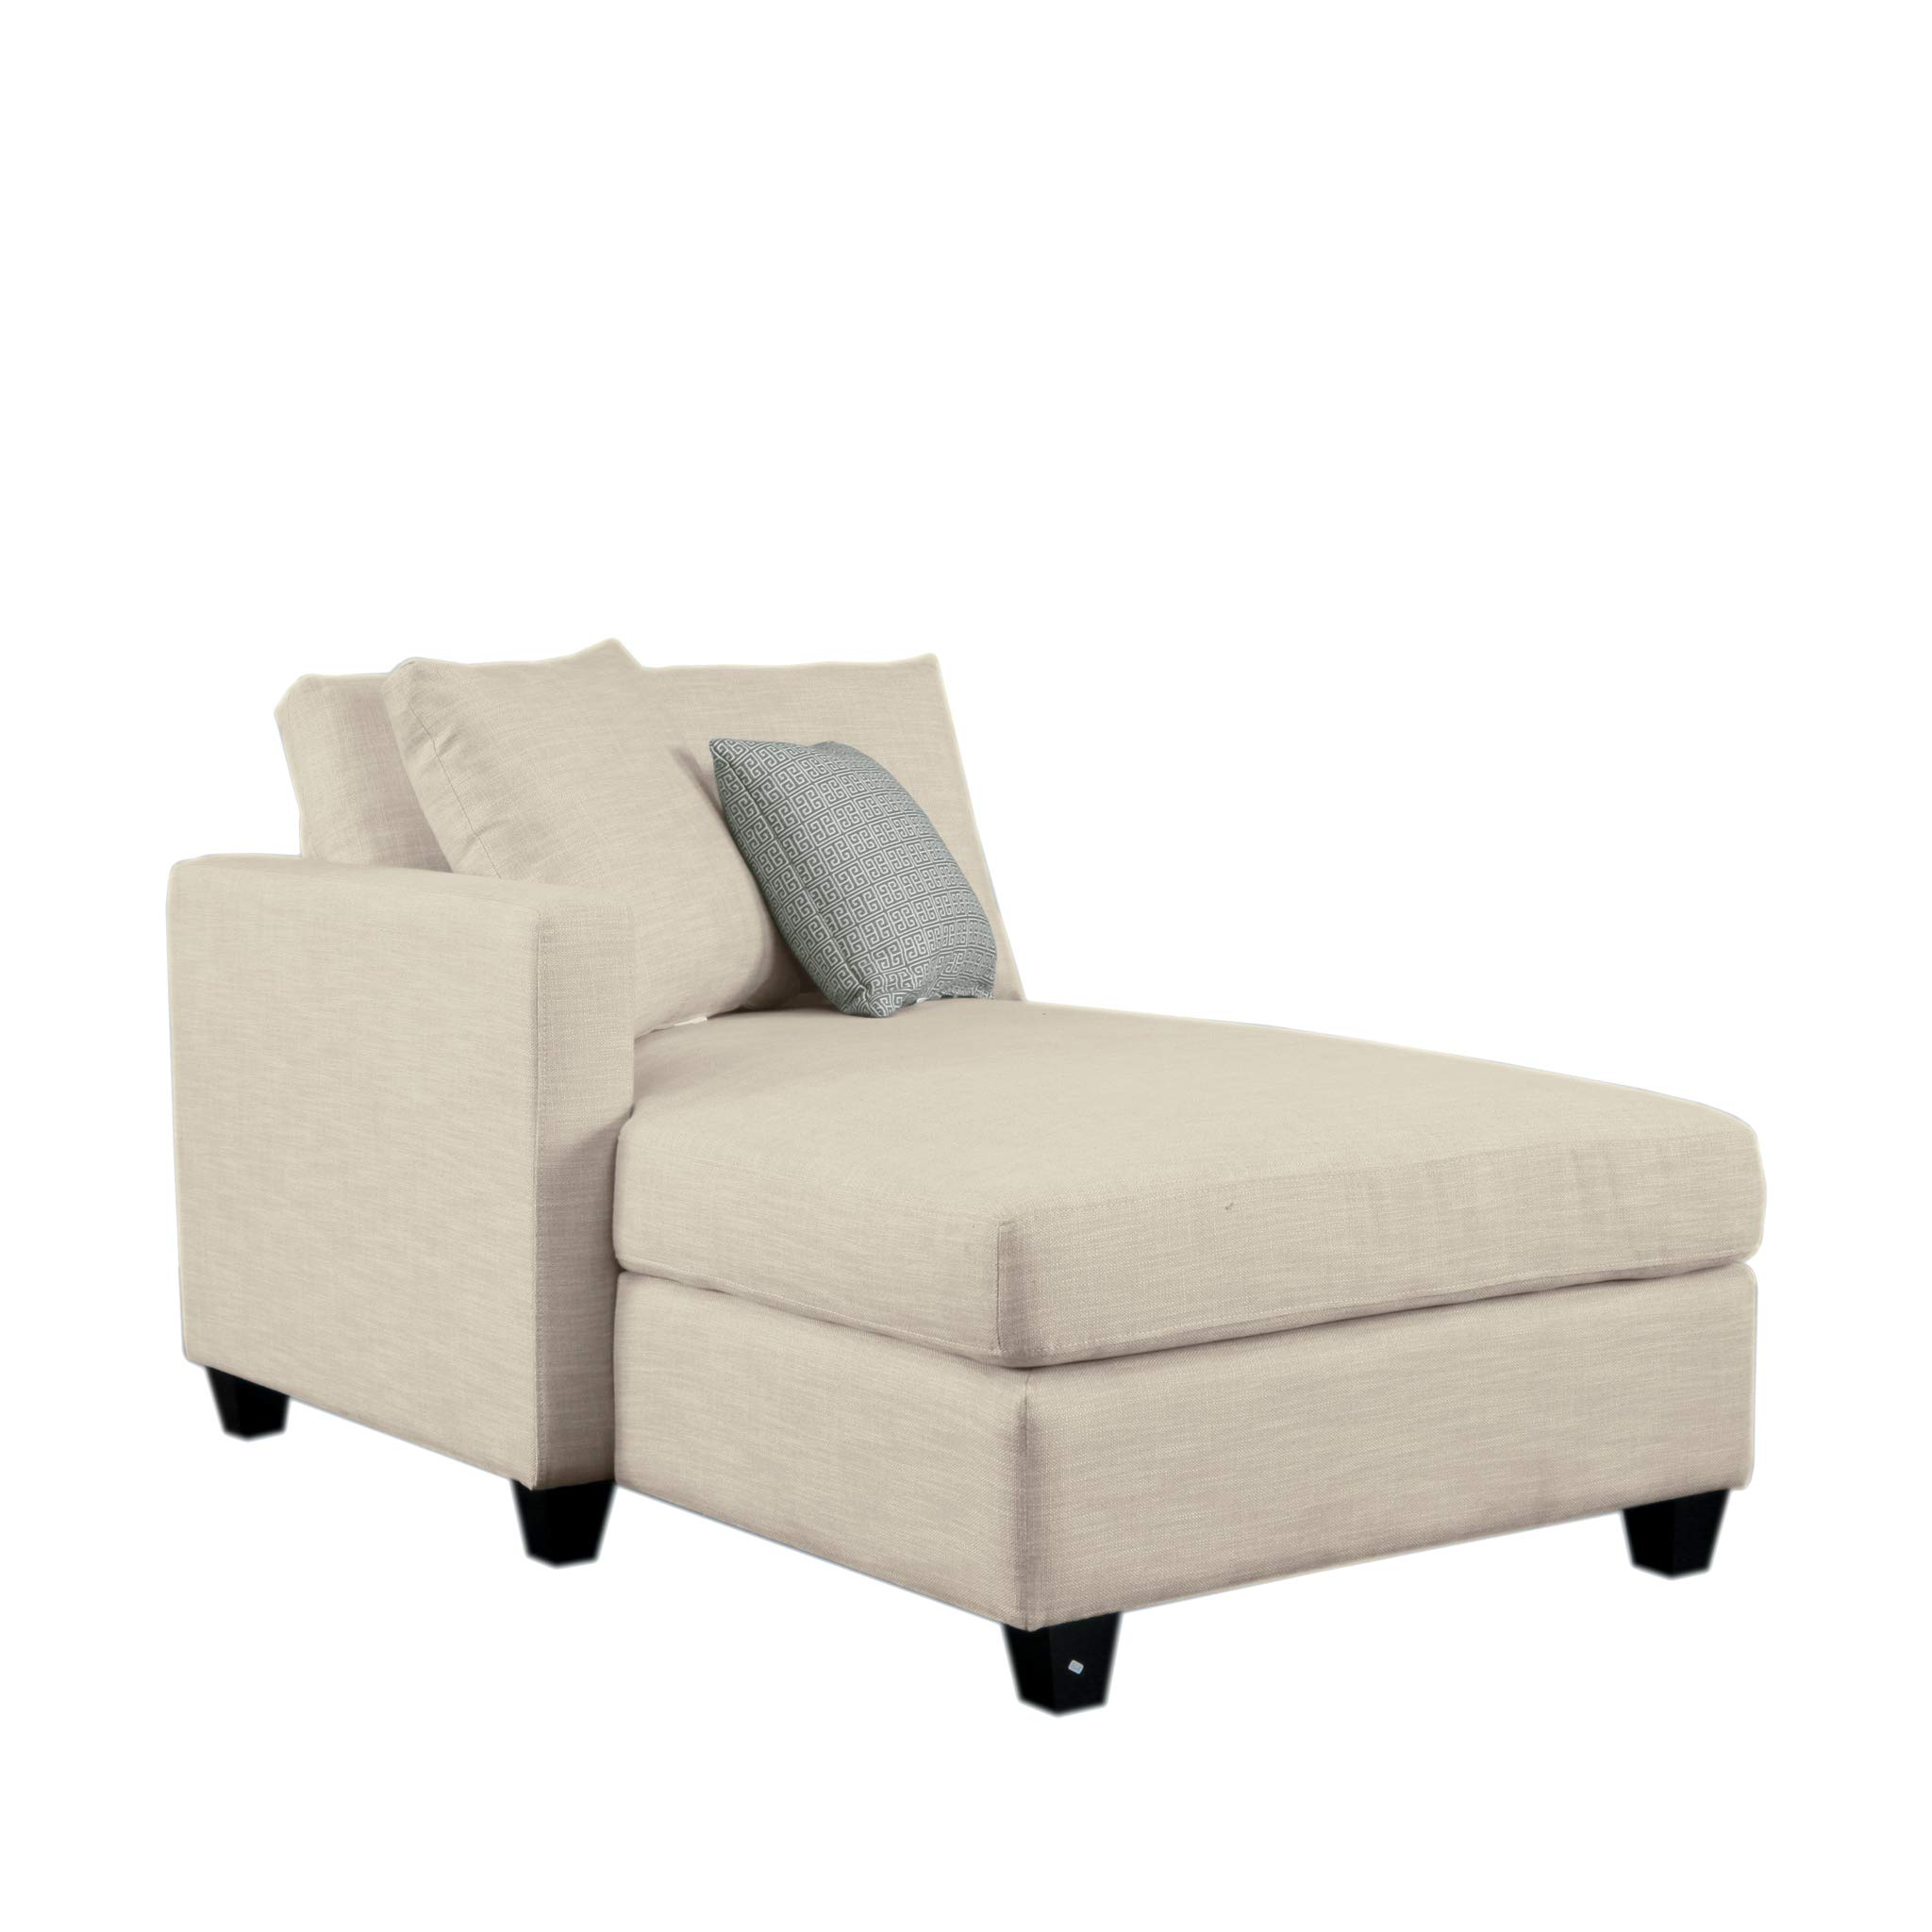 Homelegance Southgate Modular Sectional Unit, Left Side Chaise, Beige by Homelegance